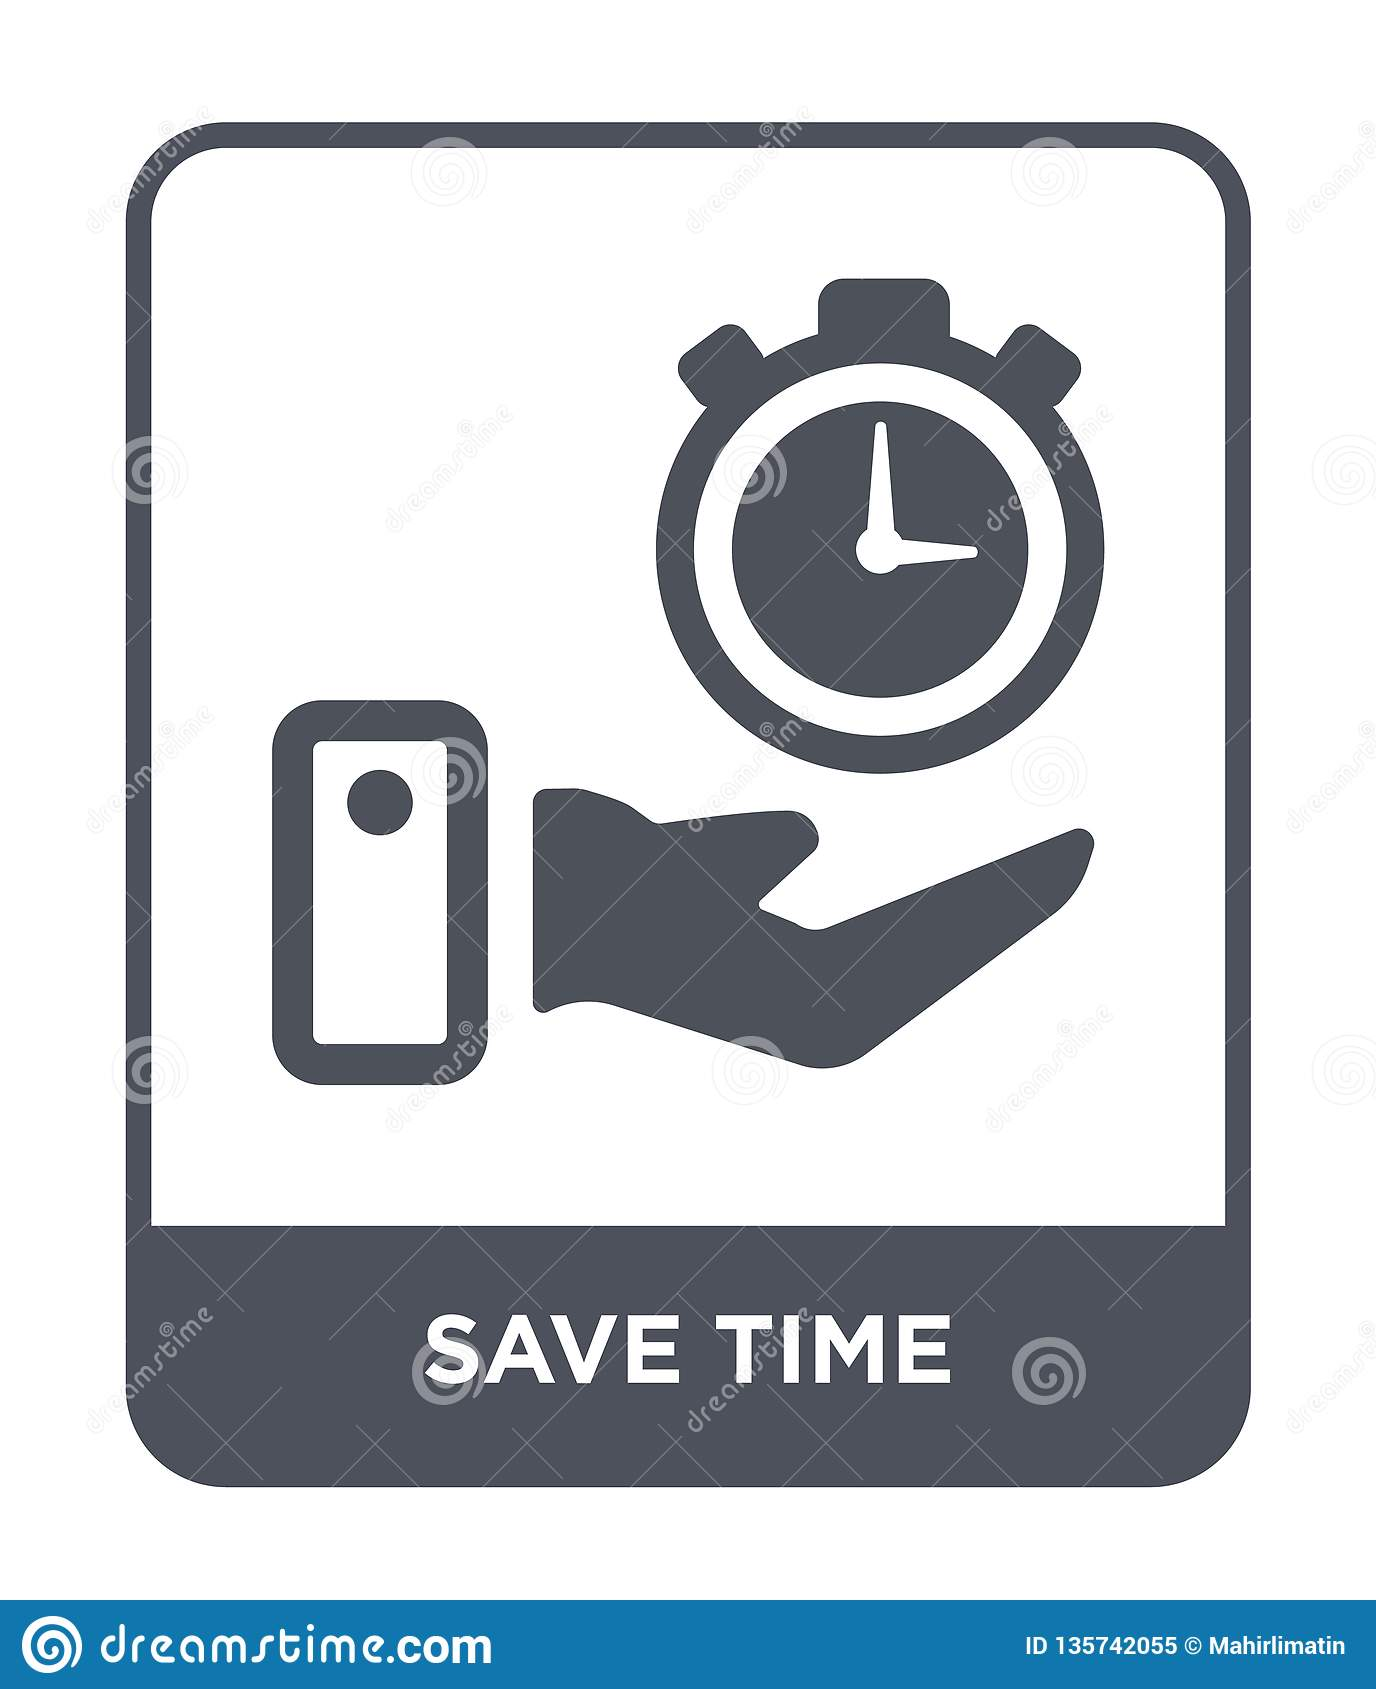 save time icon in trendy design style. save time icon isolated on white background. save time vector icon simple and modern flat